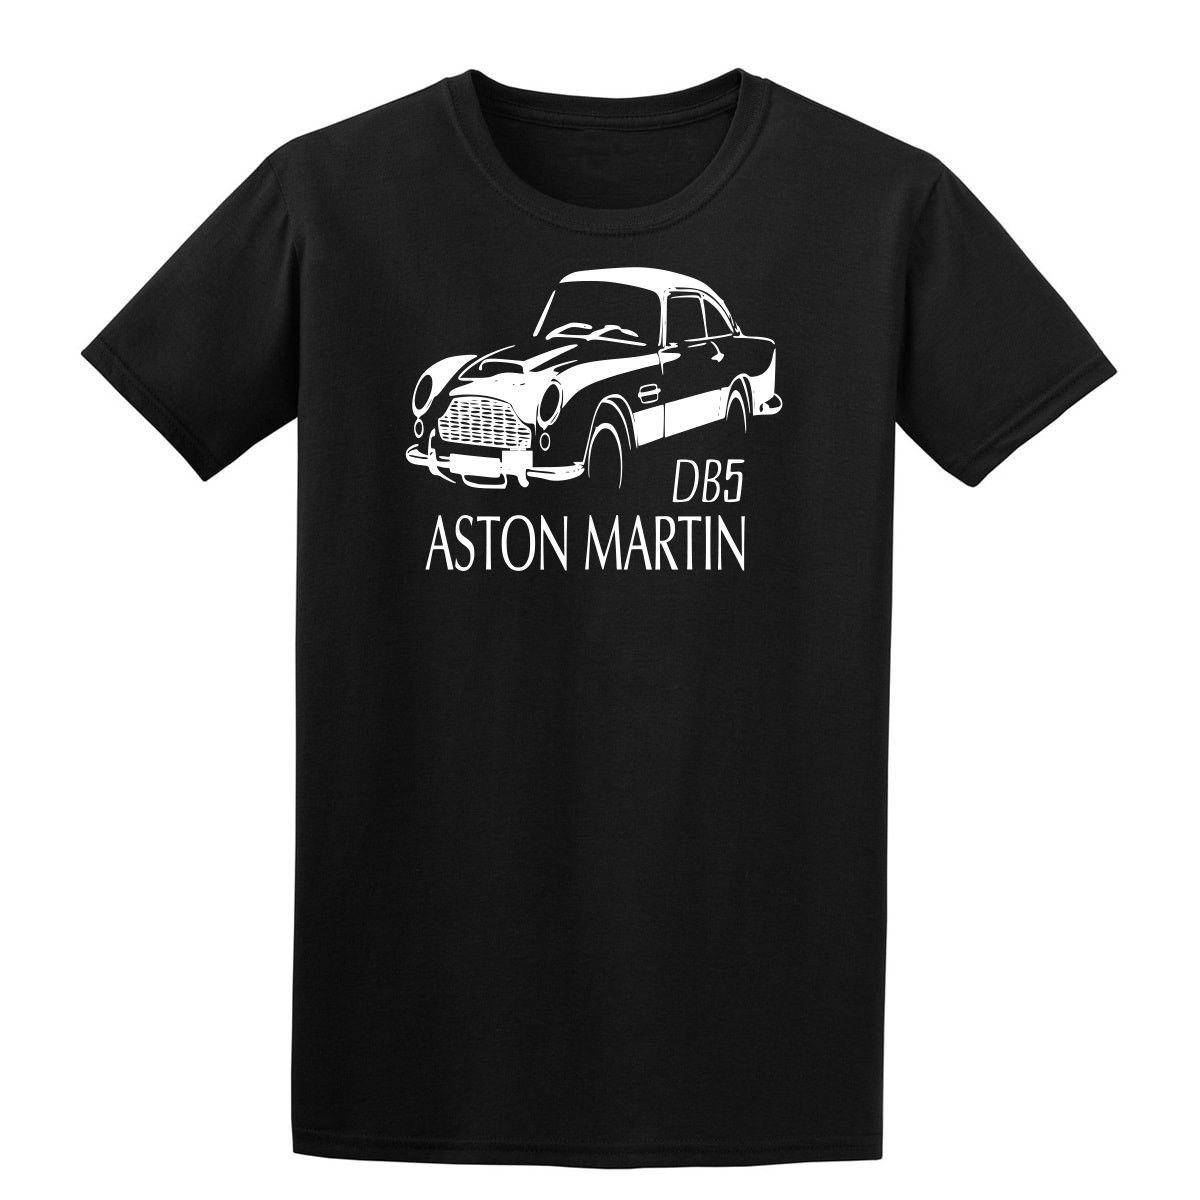 aston martin classic db5 mens t shirt s - 5xl black online with